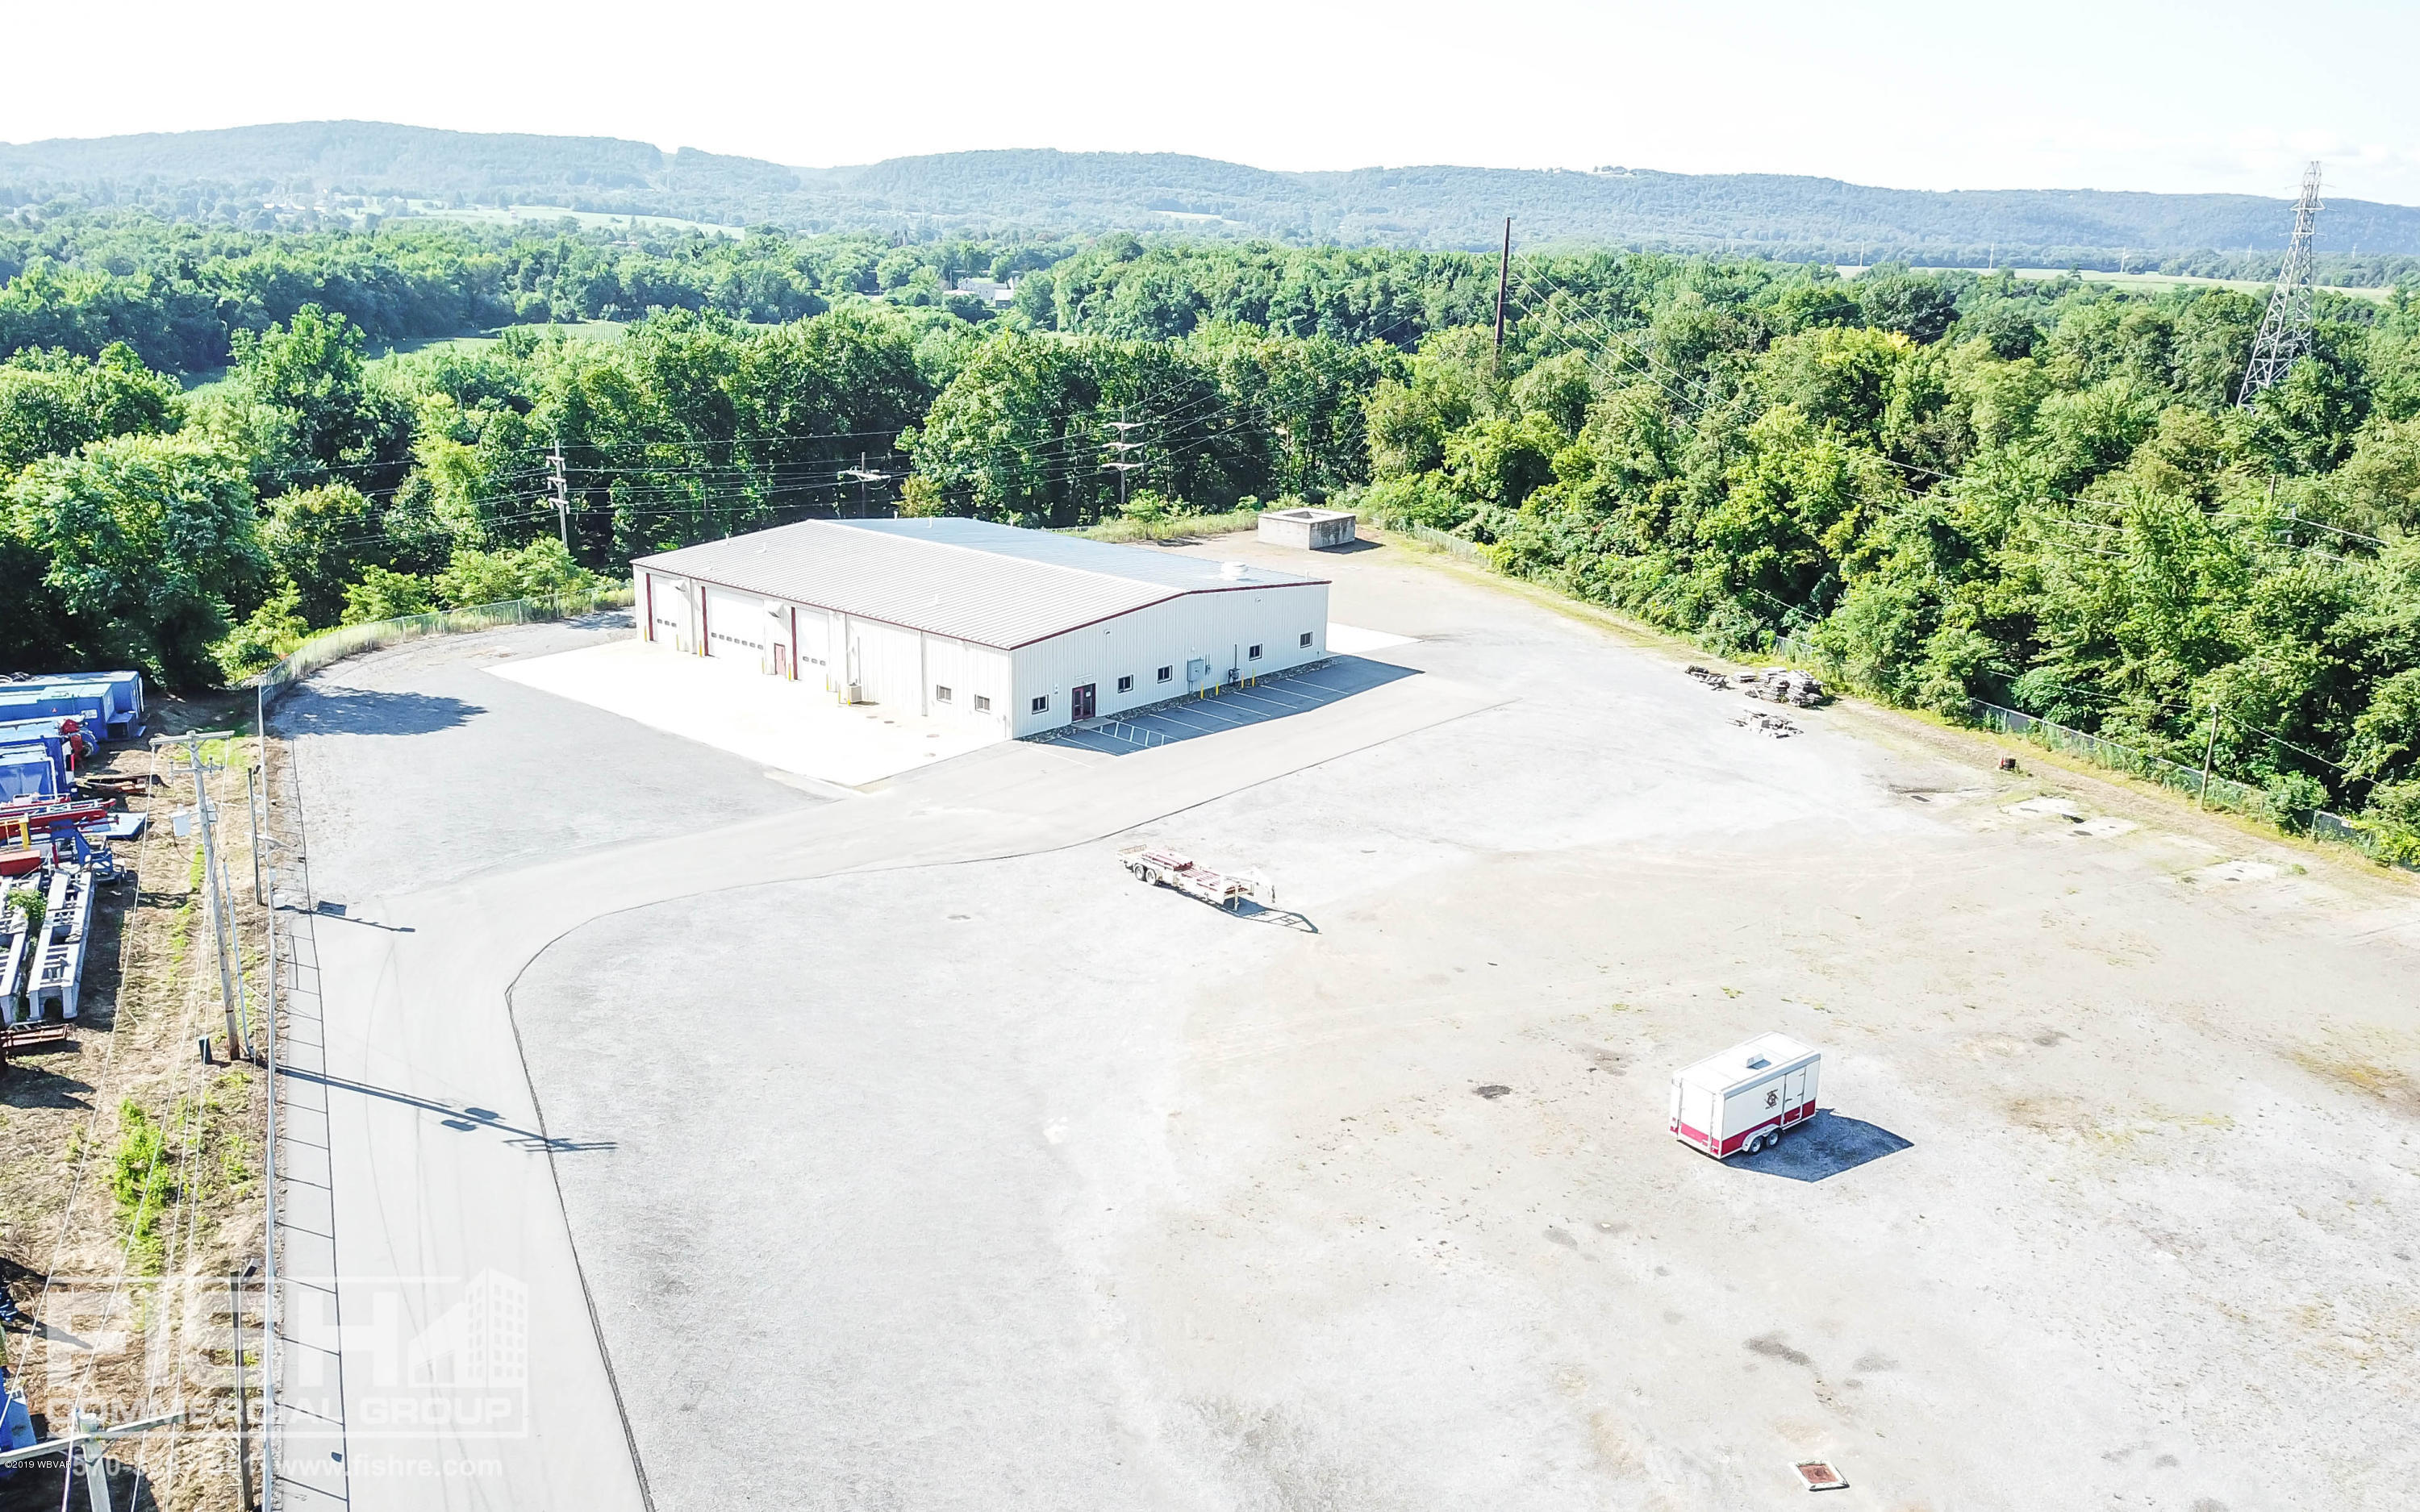 701 INDUSTRIAL PARKWAY, Muncy, PA 17756 (MLS# WB-86972